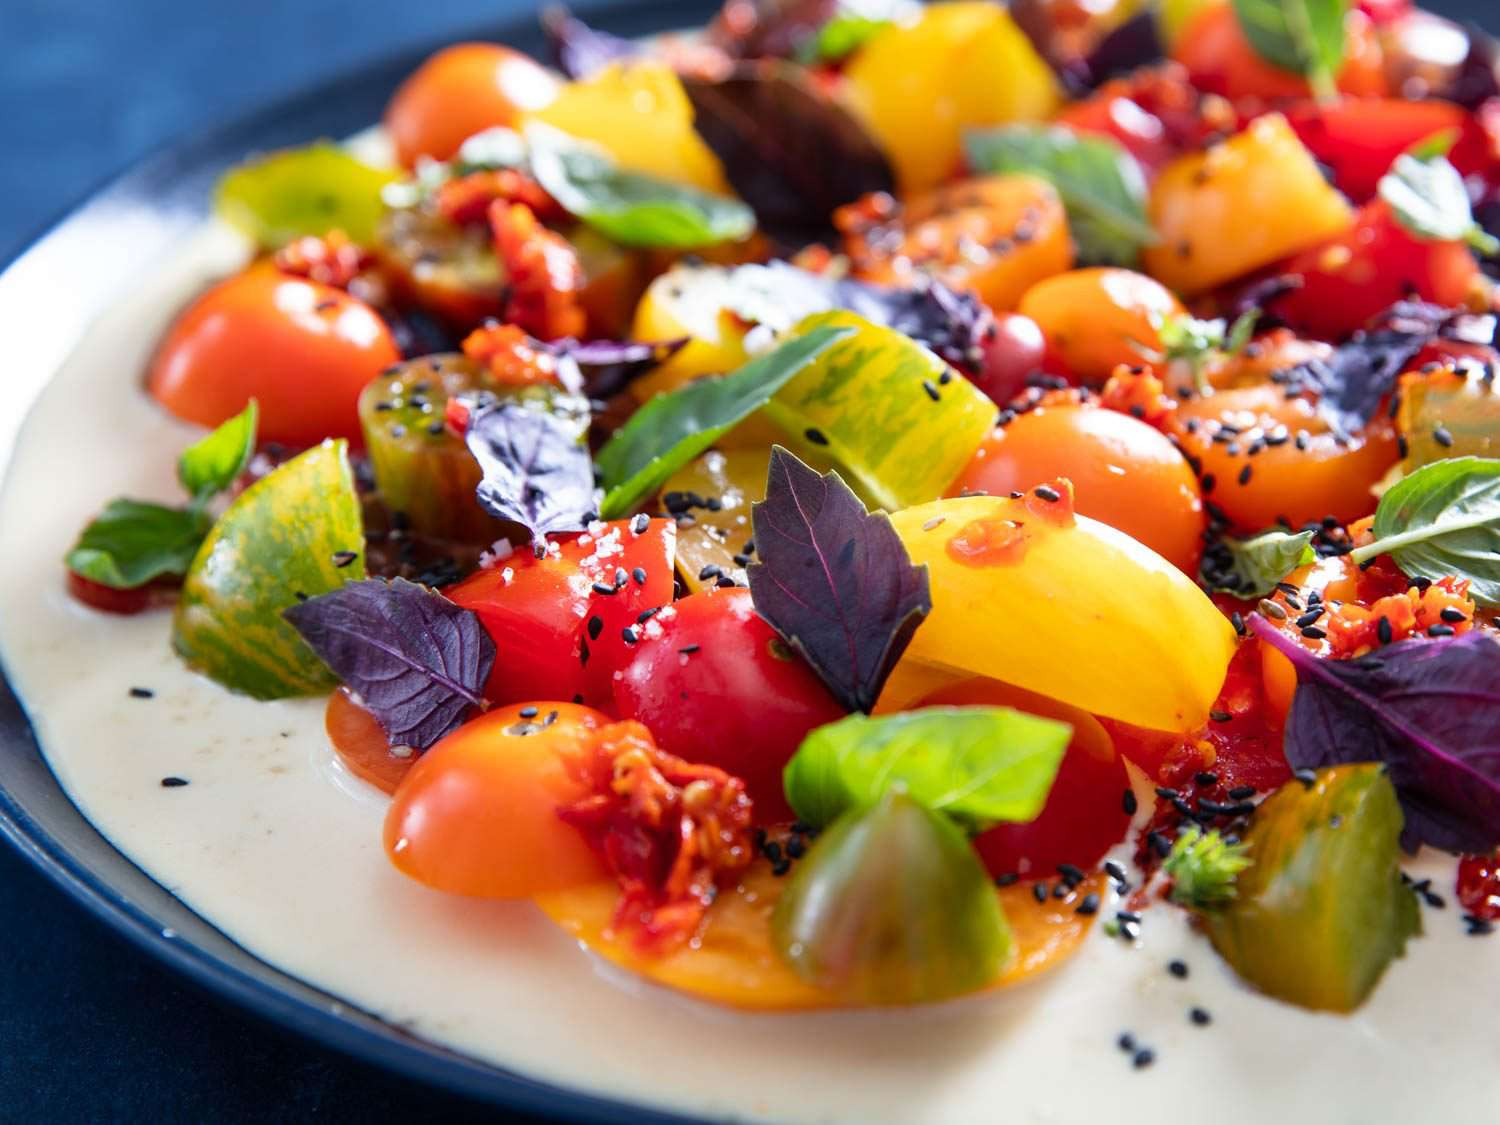 Closeup side view of tomato salad with tonnato sauce, green and purple basil, Calabrian chilies, and black sesame seeds.